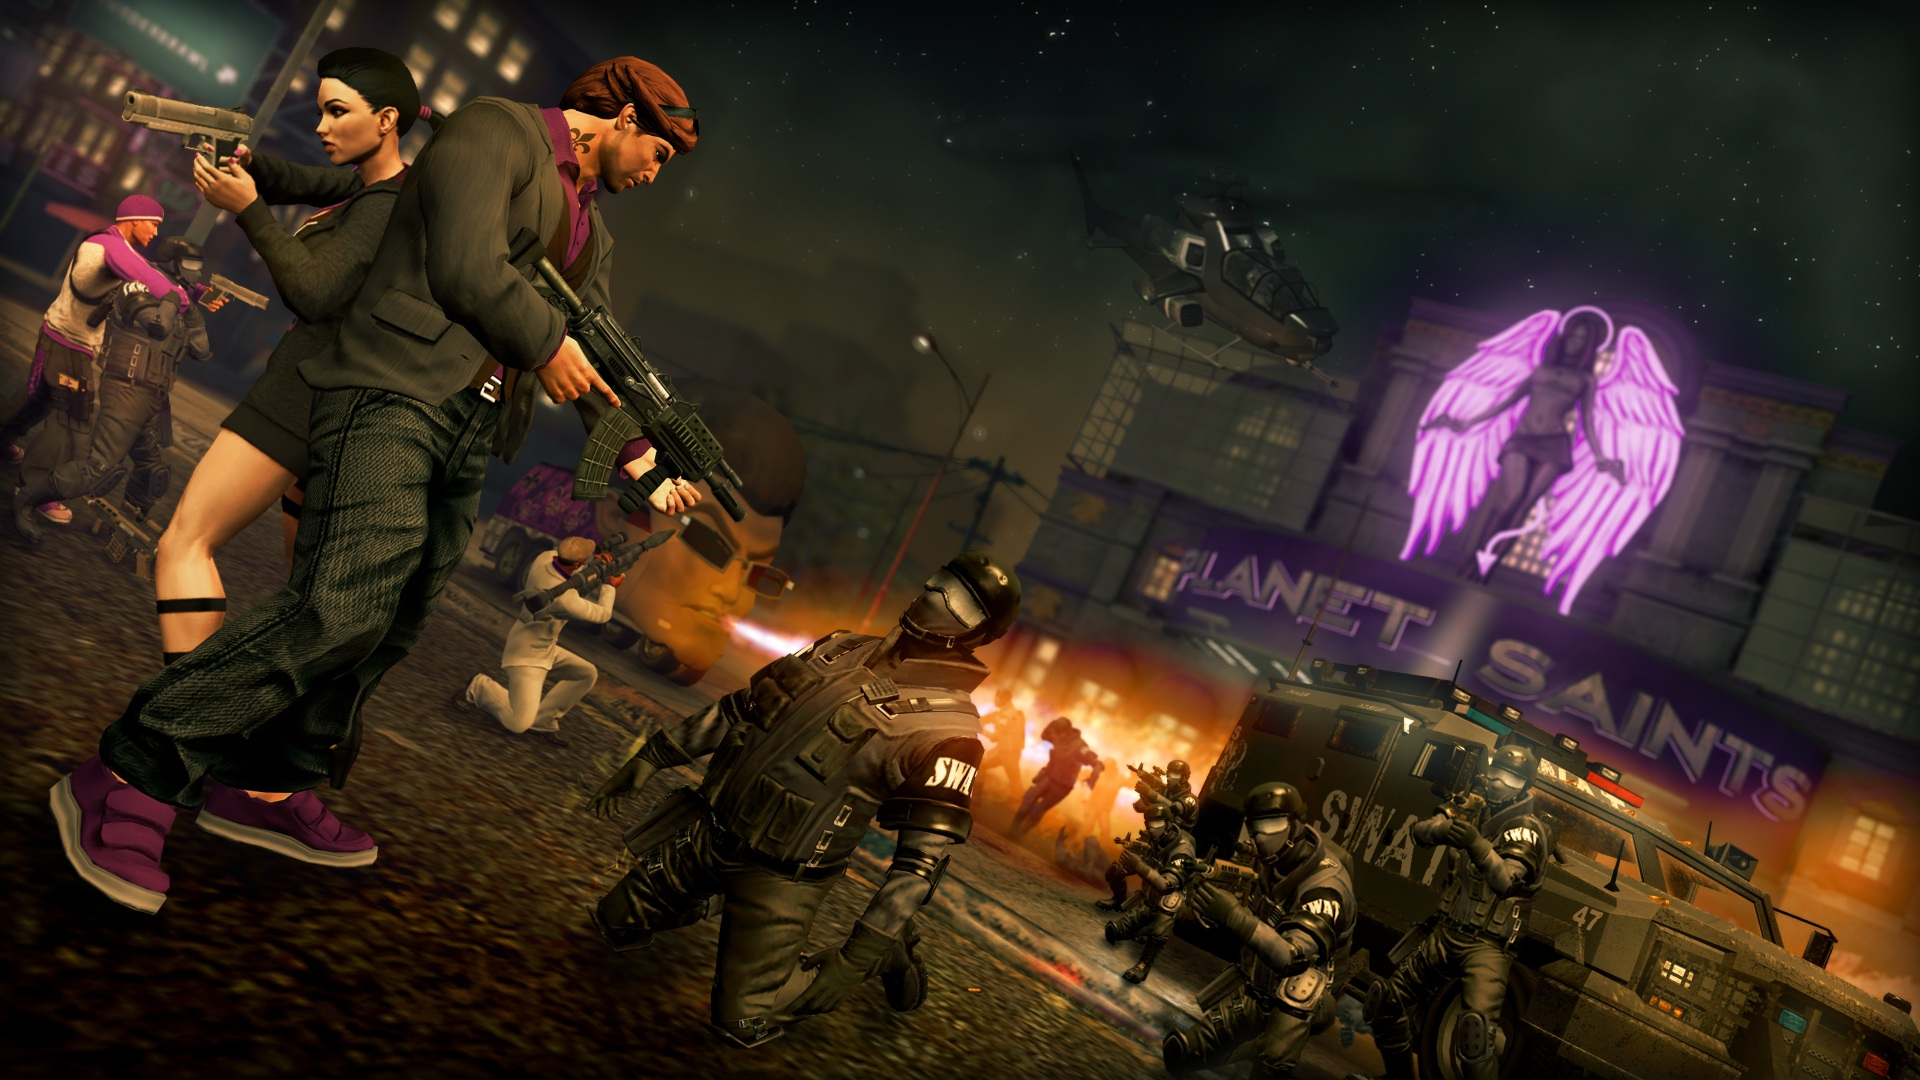 Test Saints Row 3: Gangster mit Dildos in Haha-Hasenkostümen - Saints Row: The Third